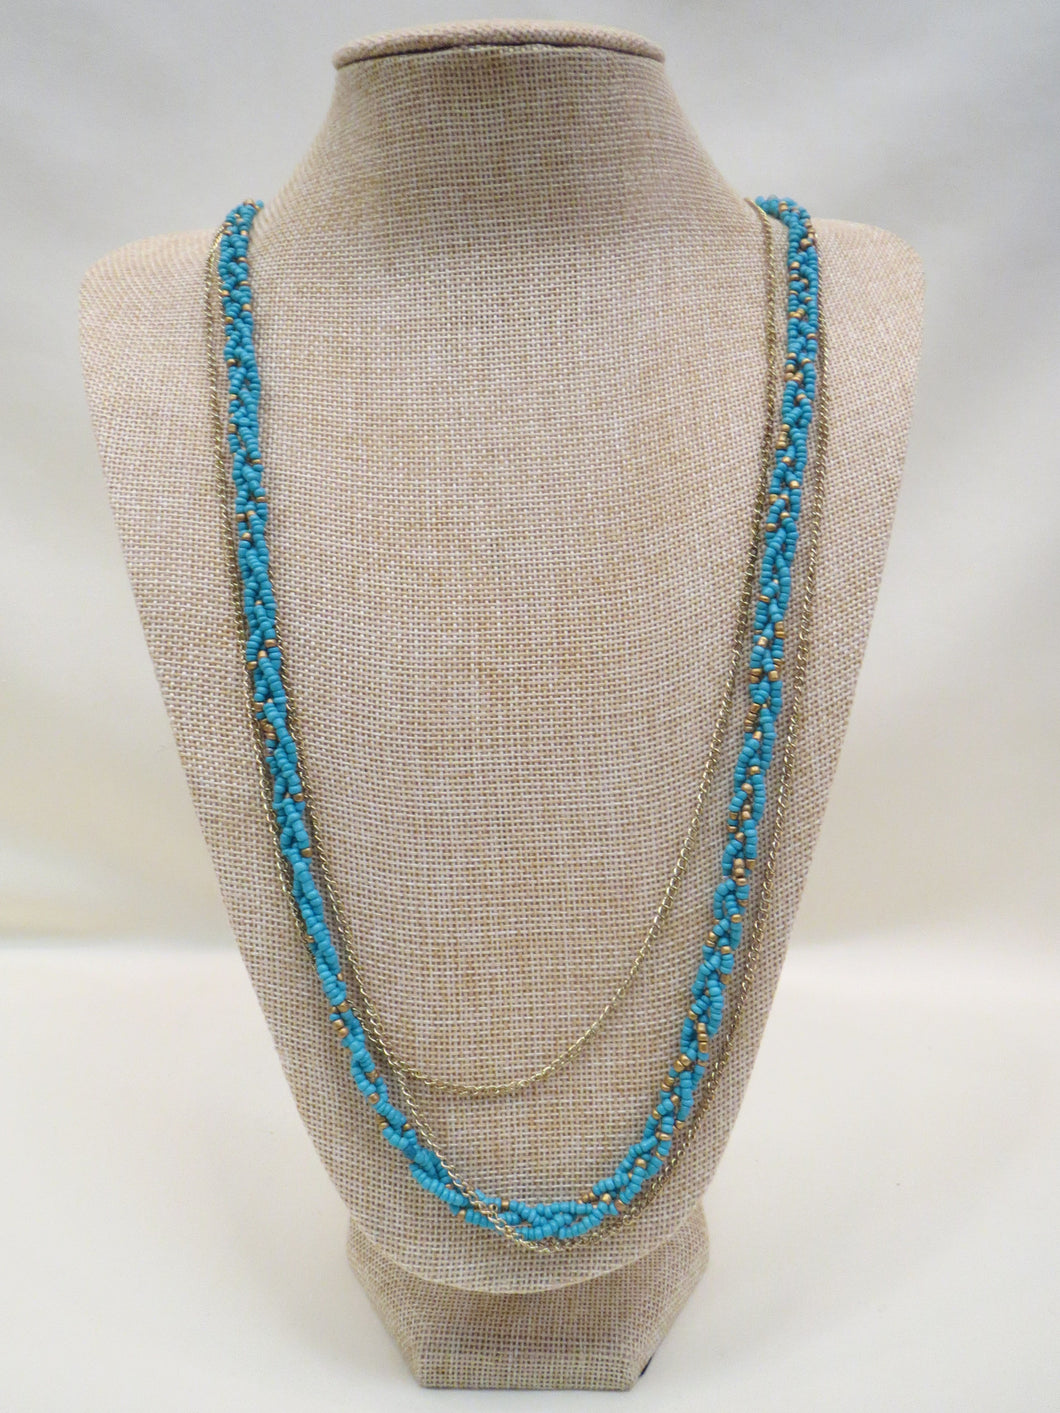 ADO | Turquoise Beads & Gold Chain Necklace - All Decd Out